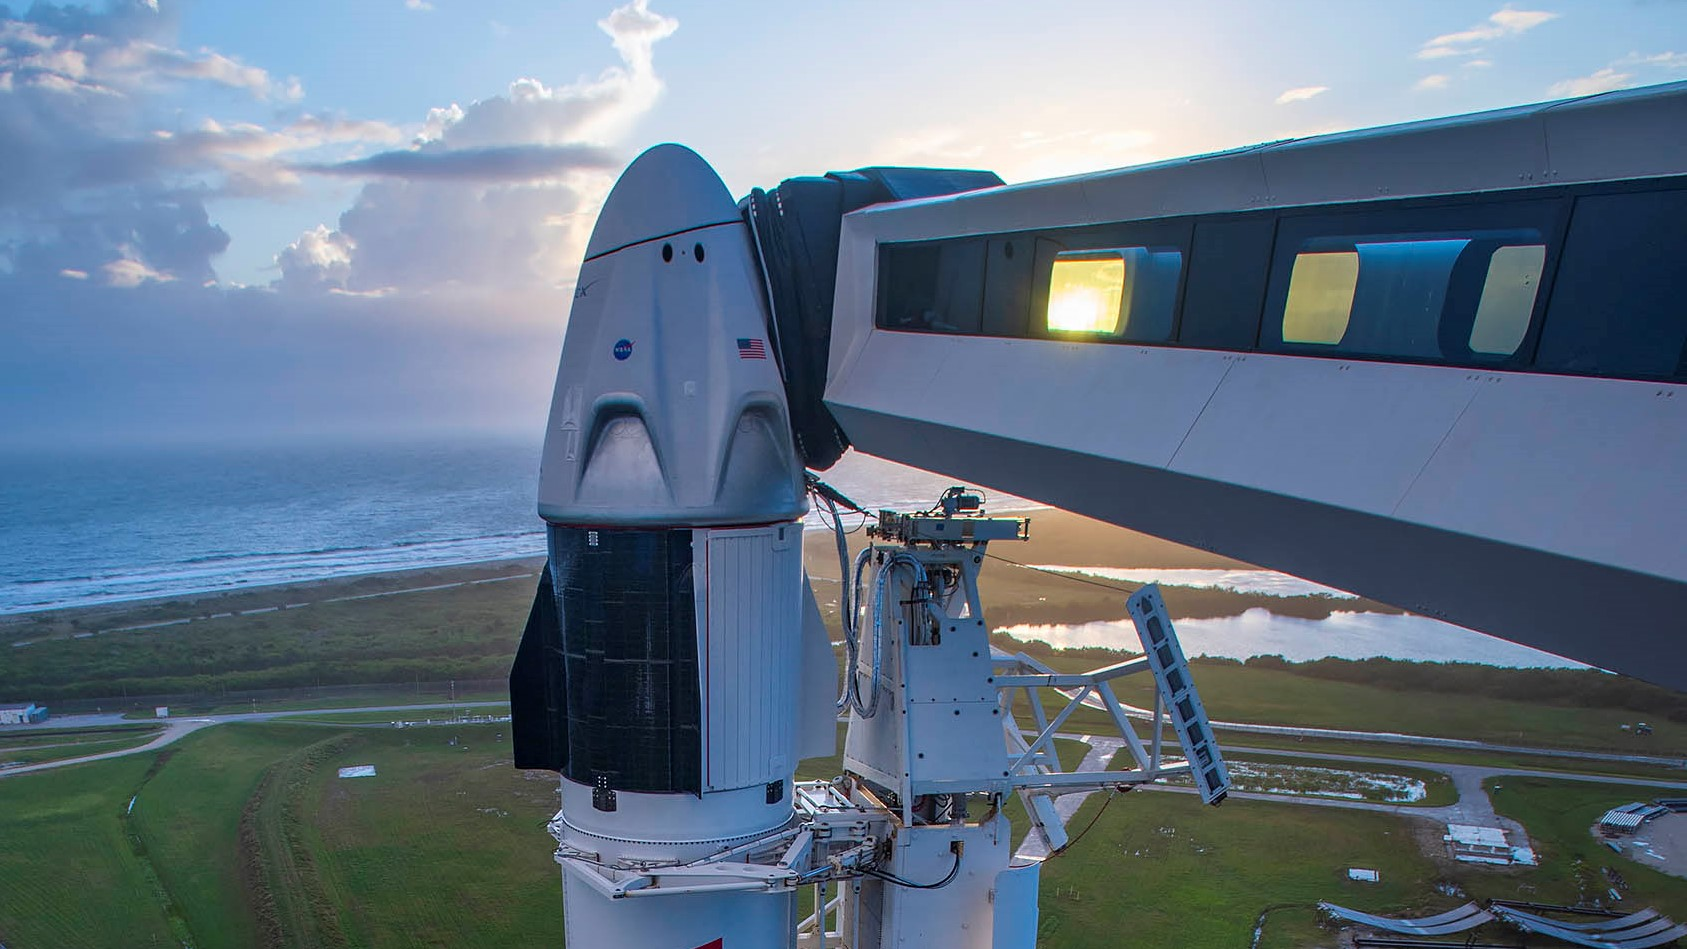 Watch SpaceX launch 4 astronauts to the ISS Saturday QWvnksrpnD28DnBGLBtaum